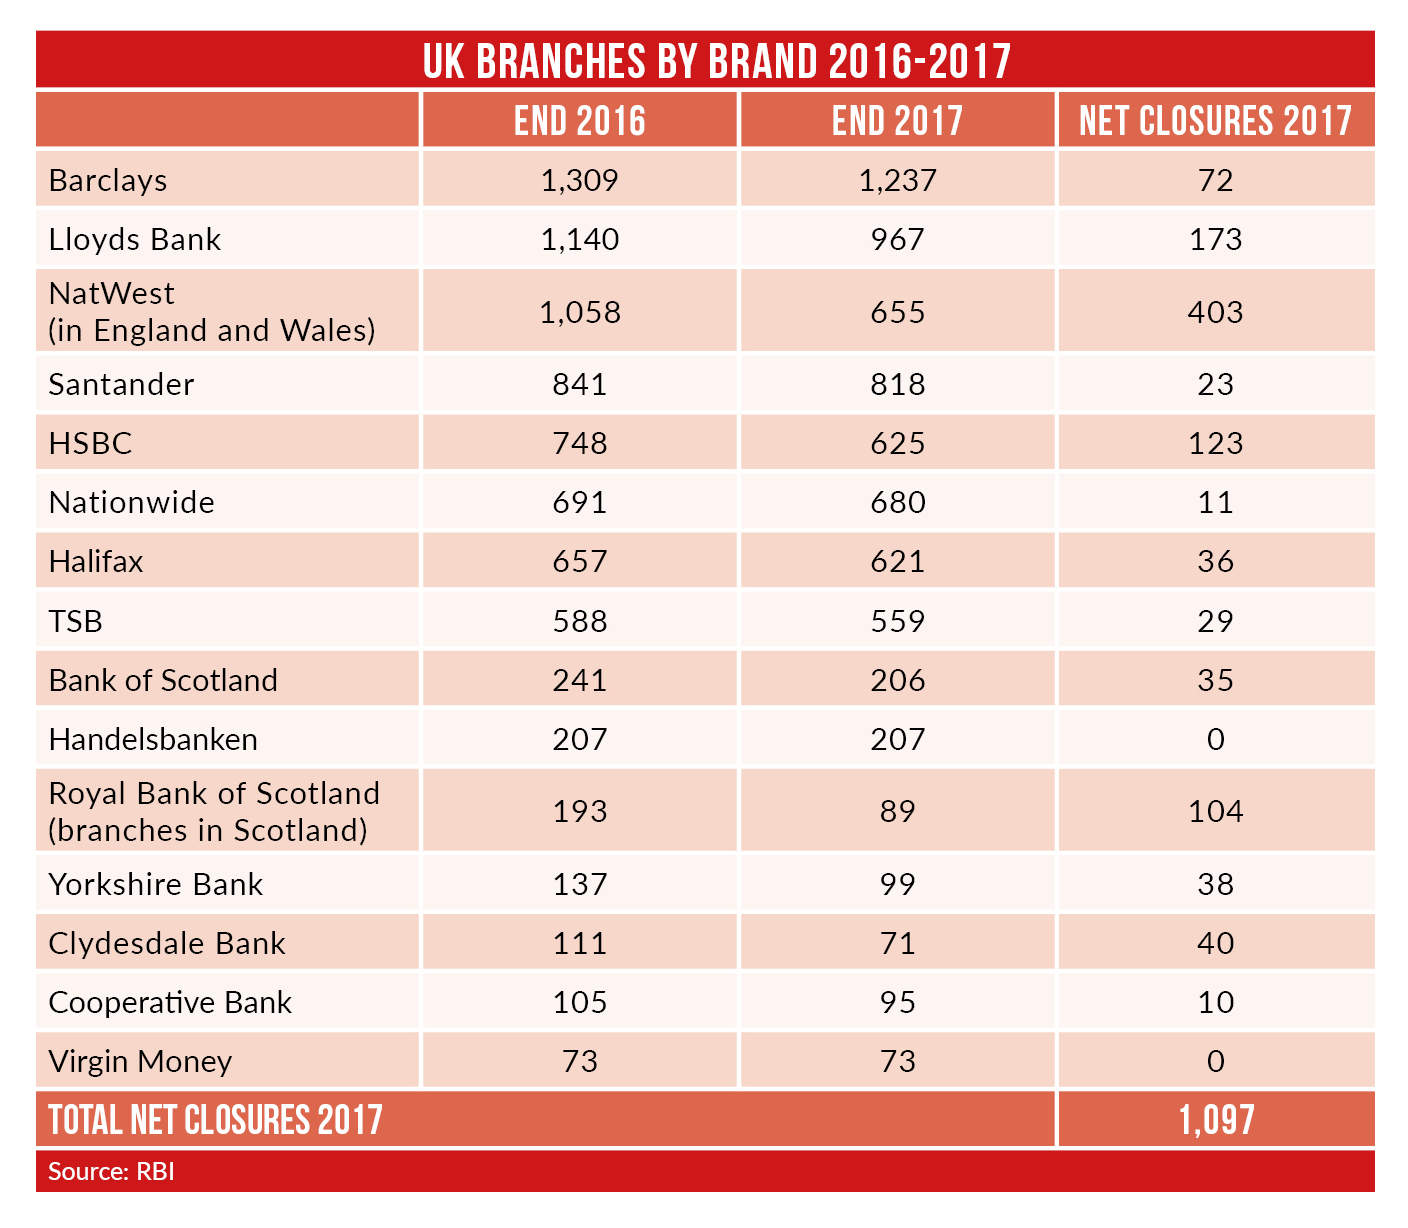 branch closures 1 - 2017 UK branch closures approach 1,100 outlets